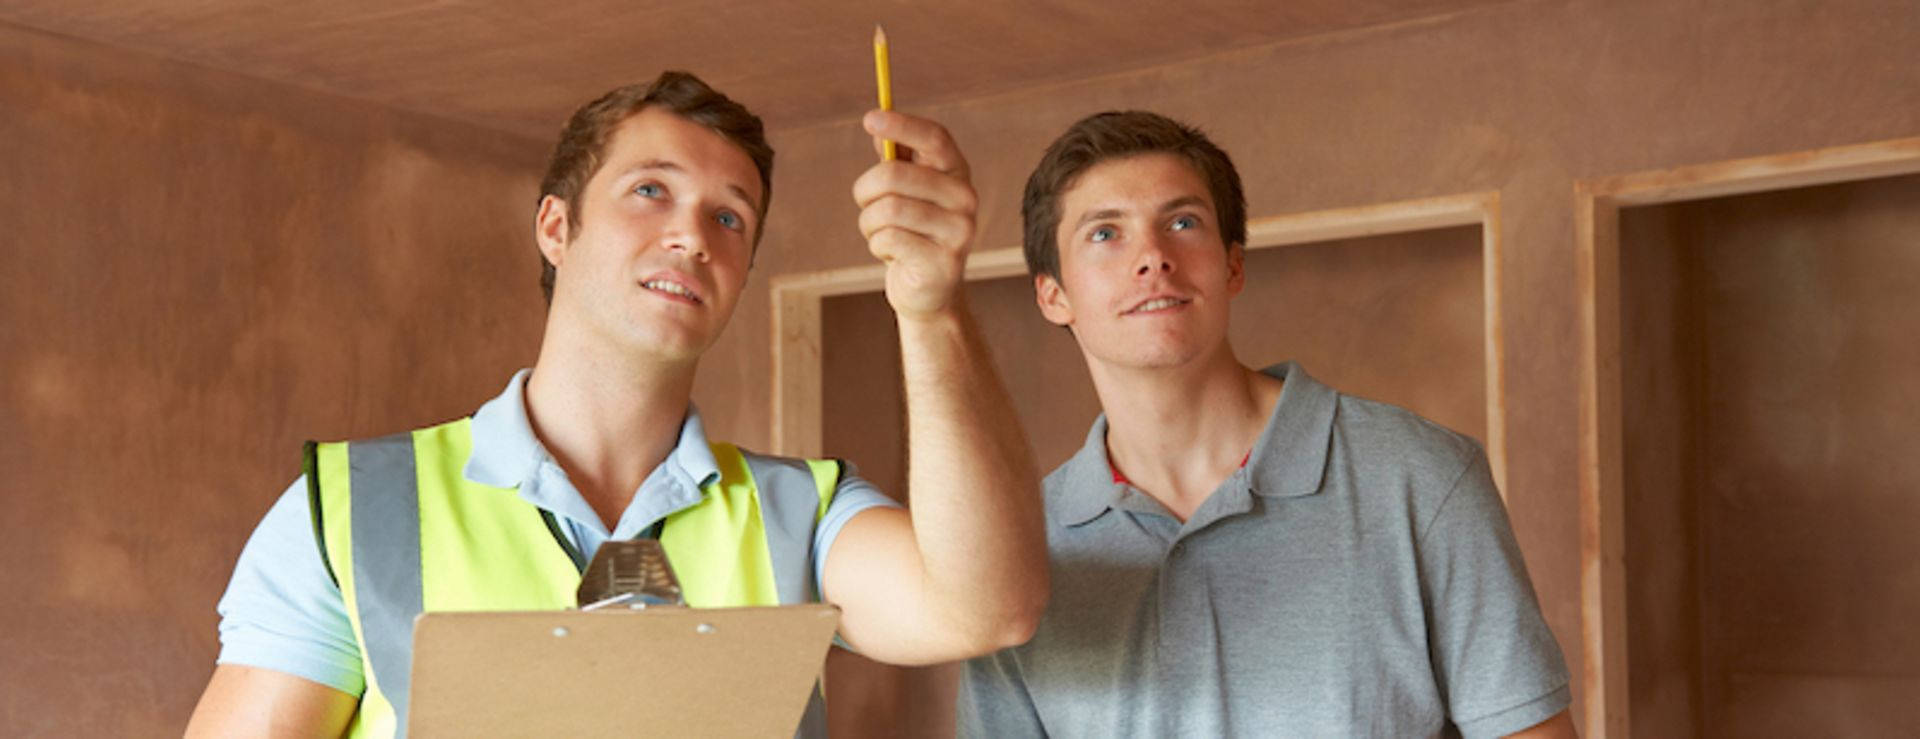 Here's Why You Need That Home Inspection